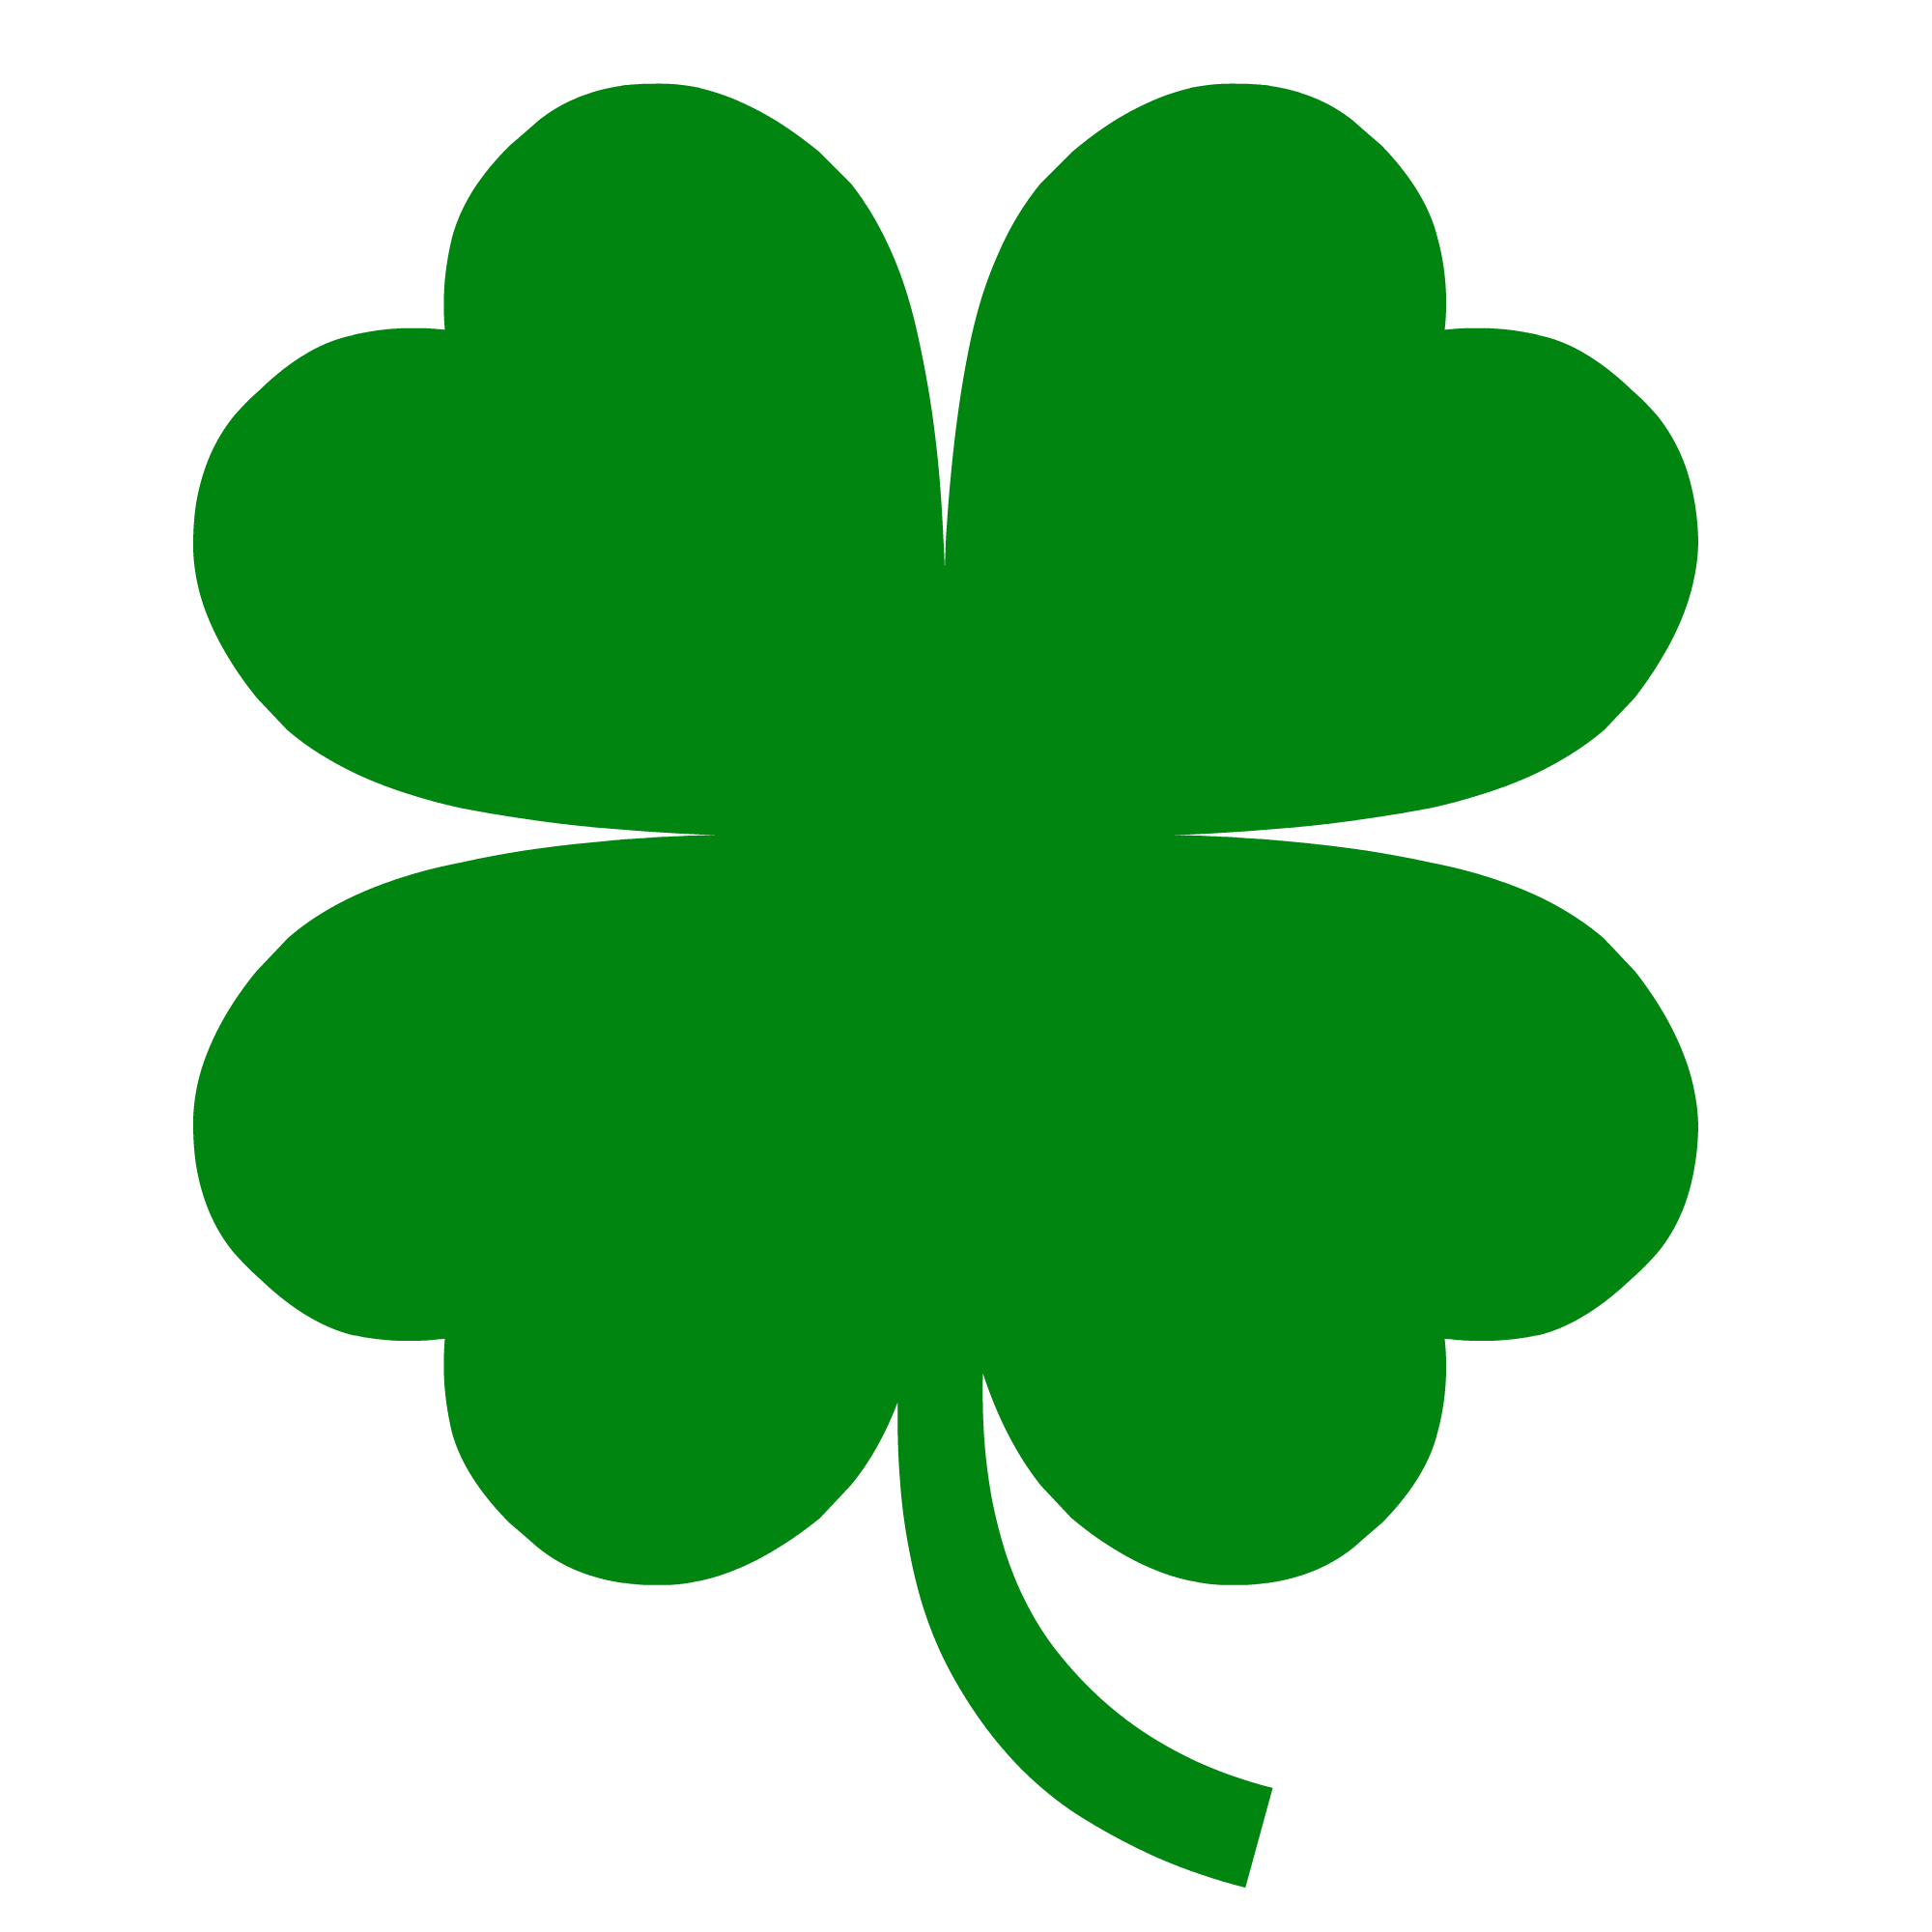 picture transparent download Introducing Images Of Four Leaf Clover Clip Ar